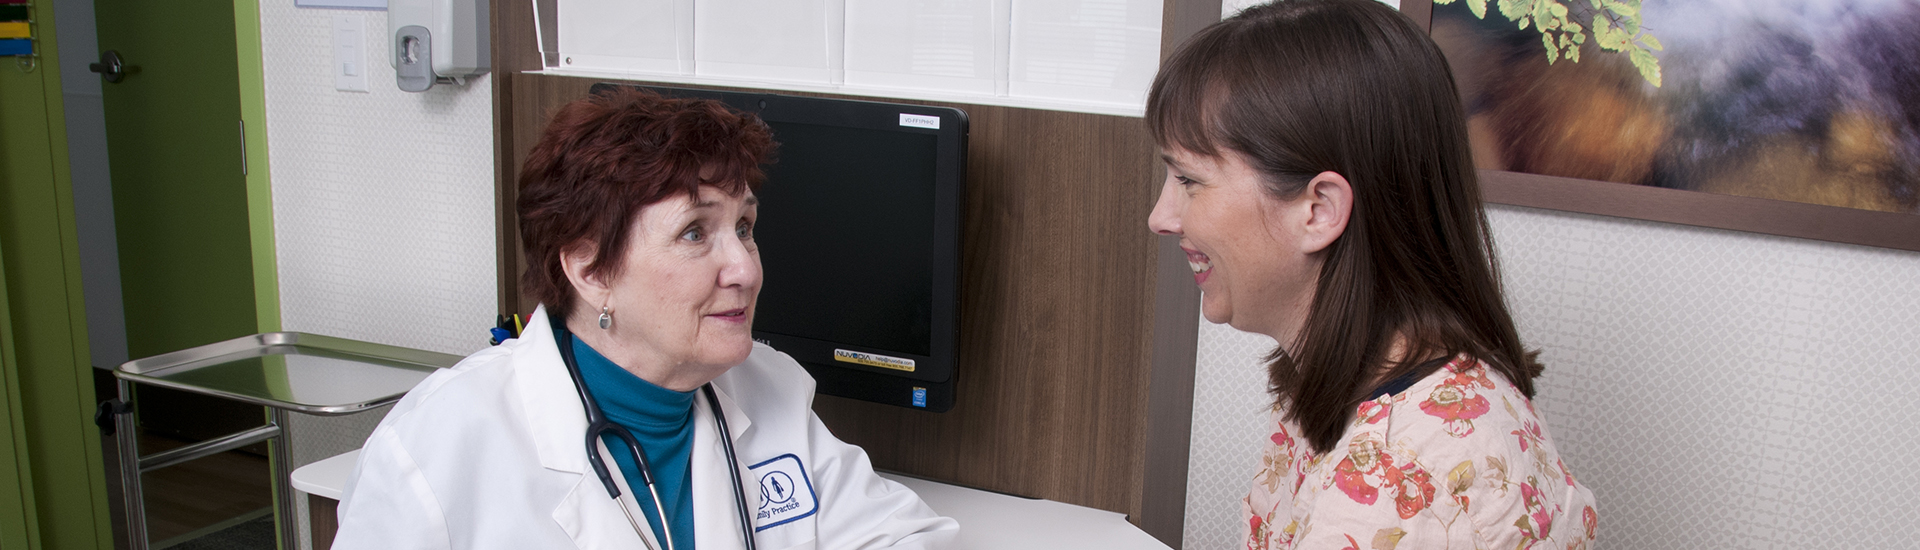 doctor-and-patient-talking